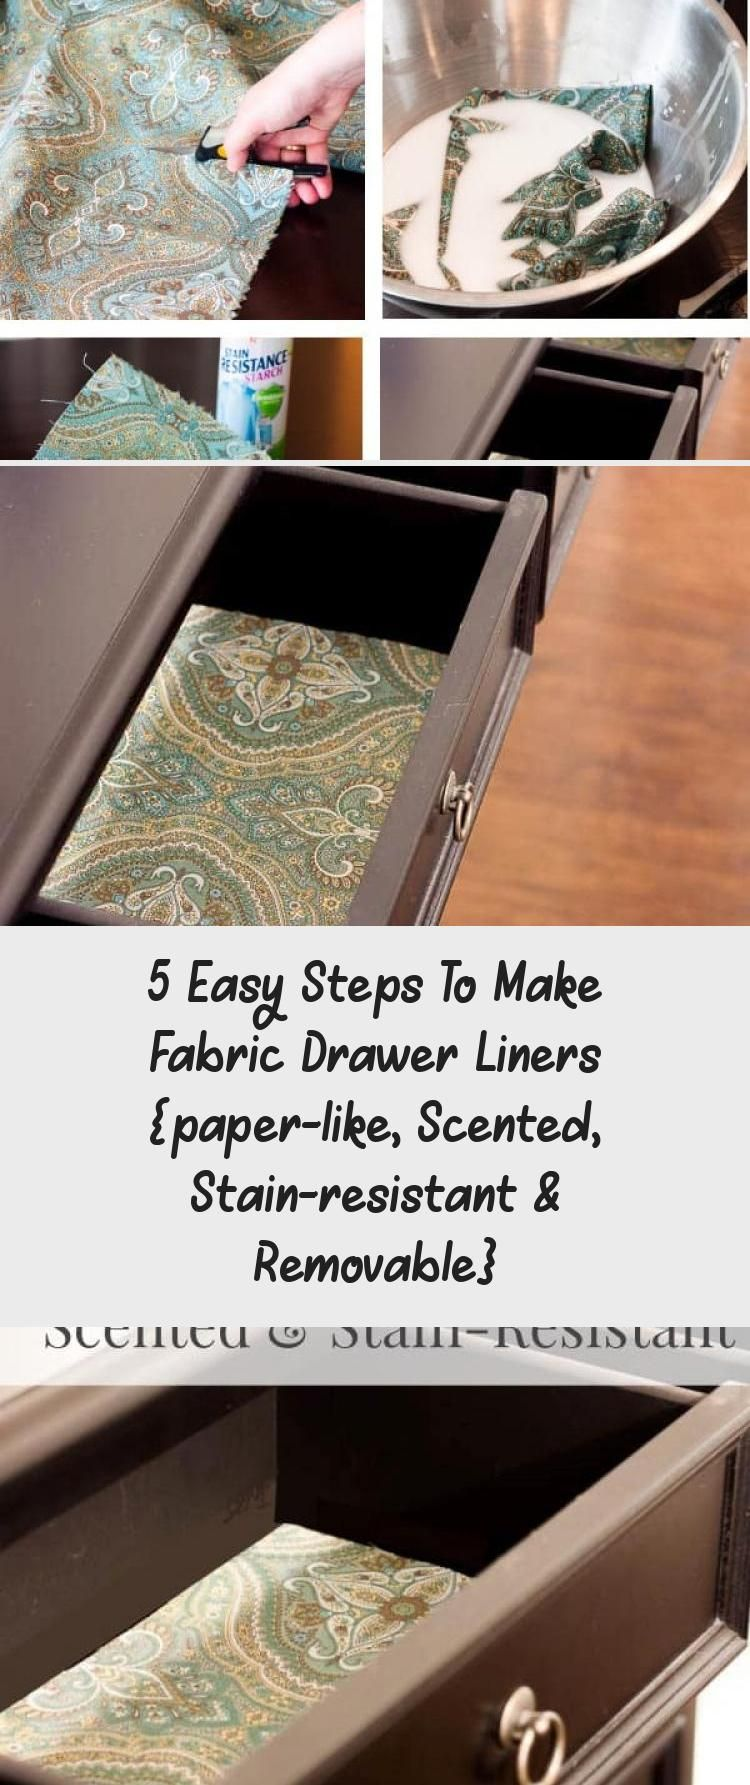 5 Easy Steps To Make Fabric Drawer Liners Paper Like Scented Stain Resistant Removable In 2020 Fabric Drawers Drawer Liner Stain Resistant